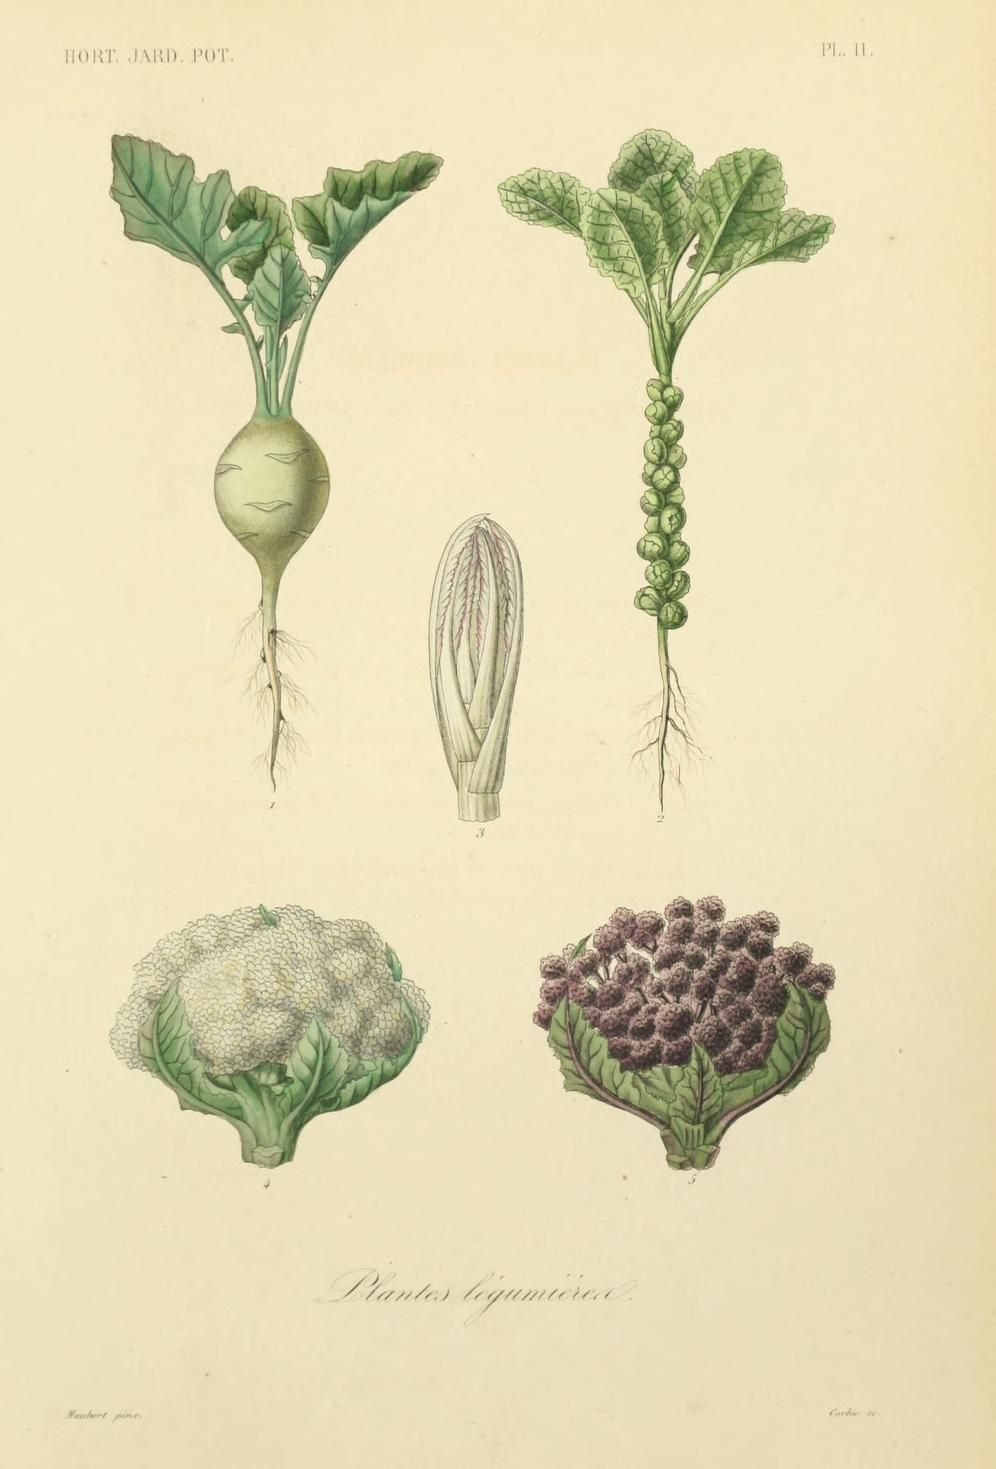 Horticulture: Jardin potager et jardin fruitier by Hérincq, F. (François), 1820-1891 and Gérard, Frédéric. / Not In Copyright (aka public domain) - http://www.biodiversitylibrary.org/item/43933#page/55/mode/1up